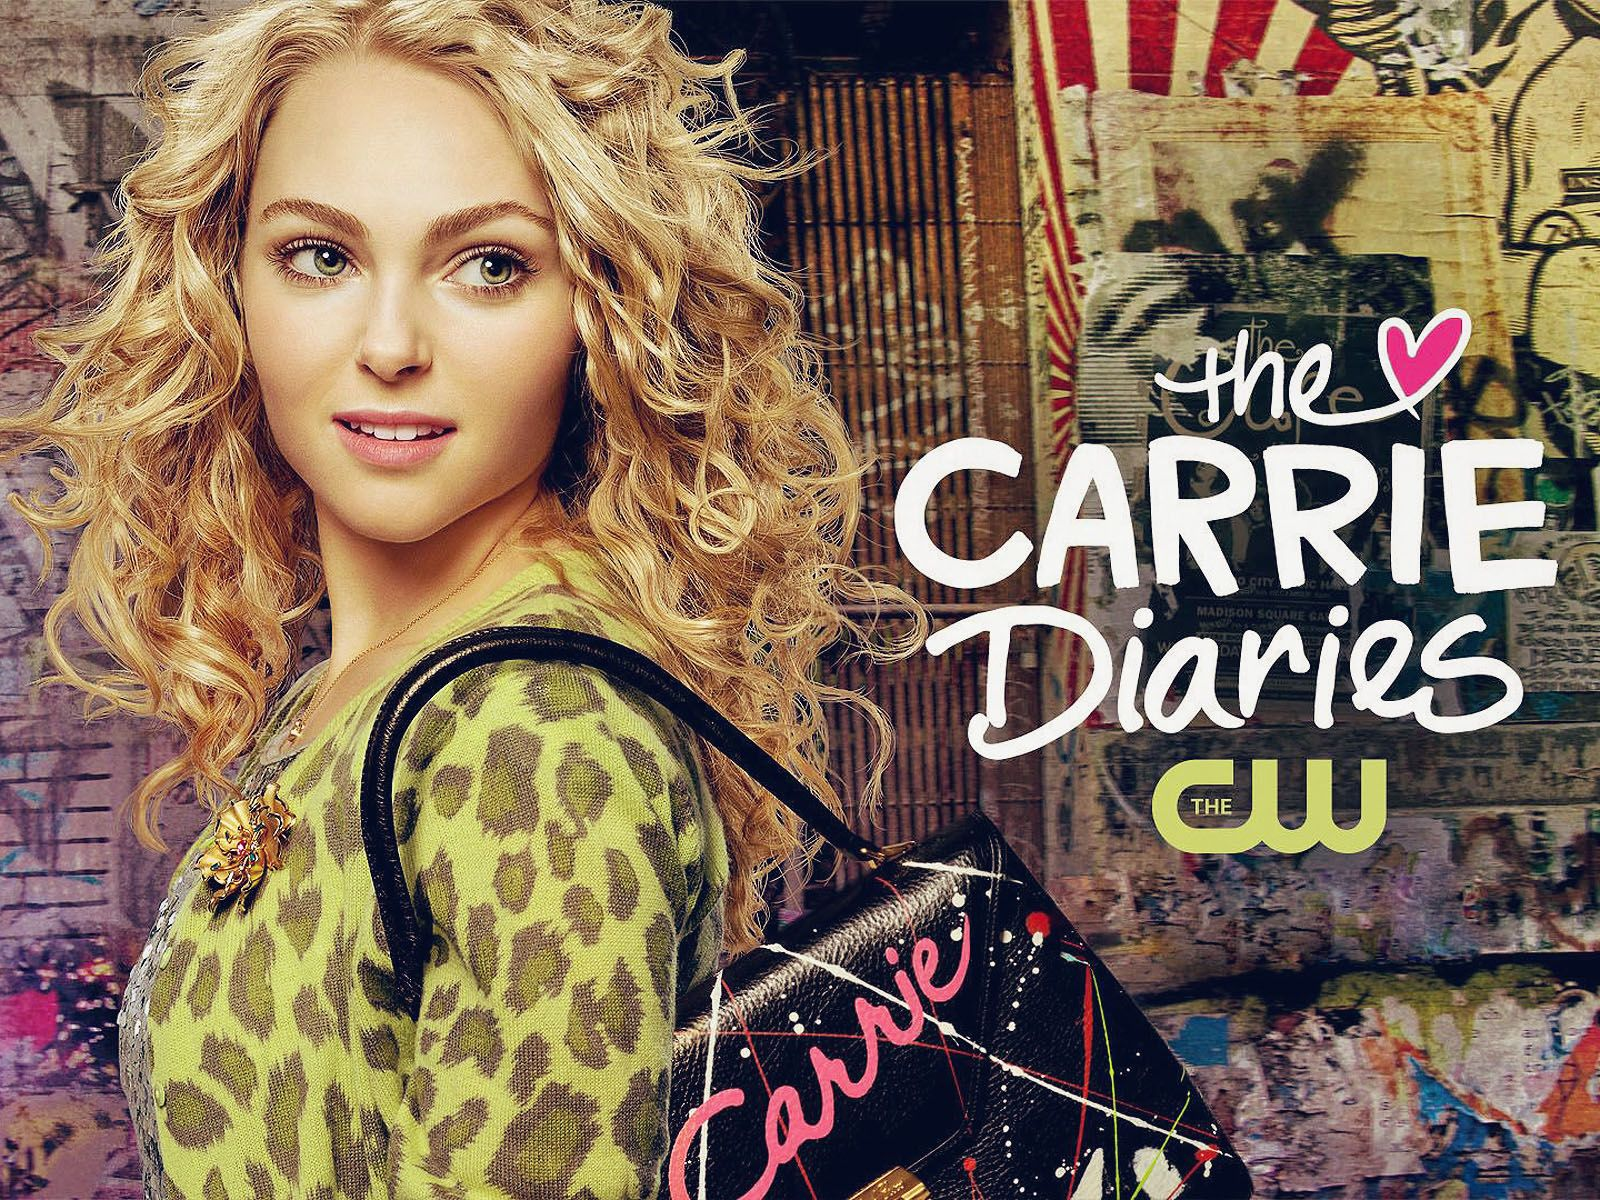 The Carrie Diaries Seasons 01-02 HDTV S3az